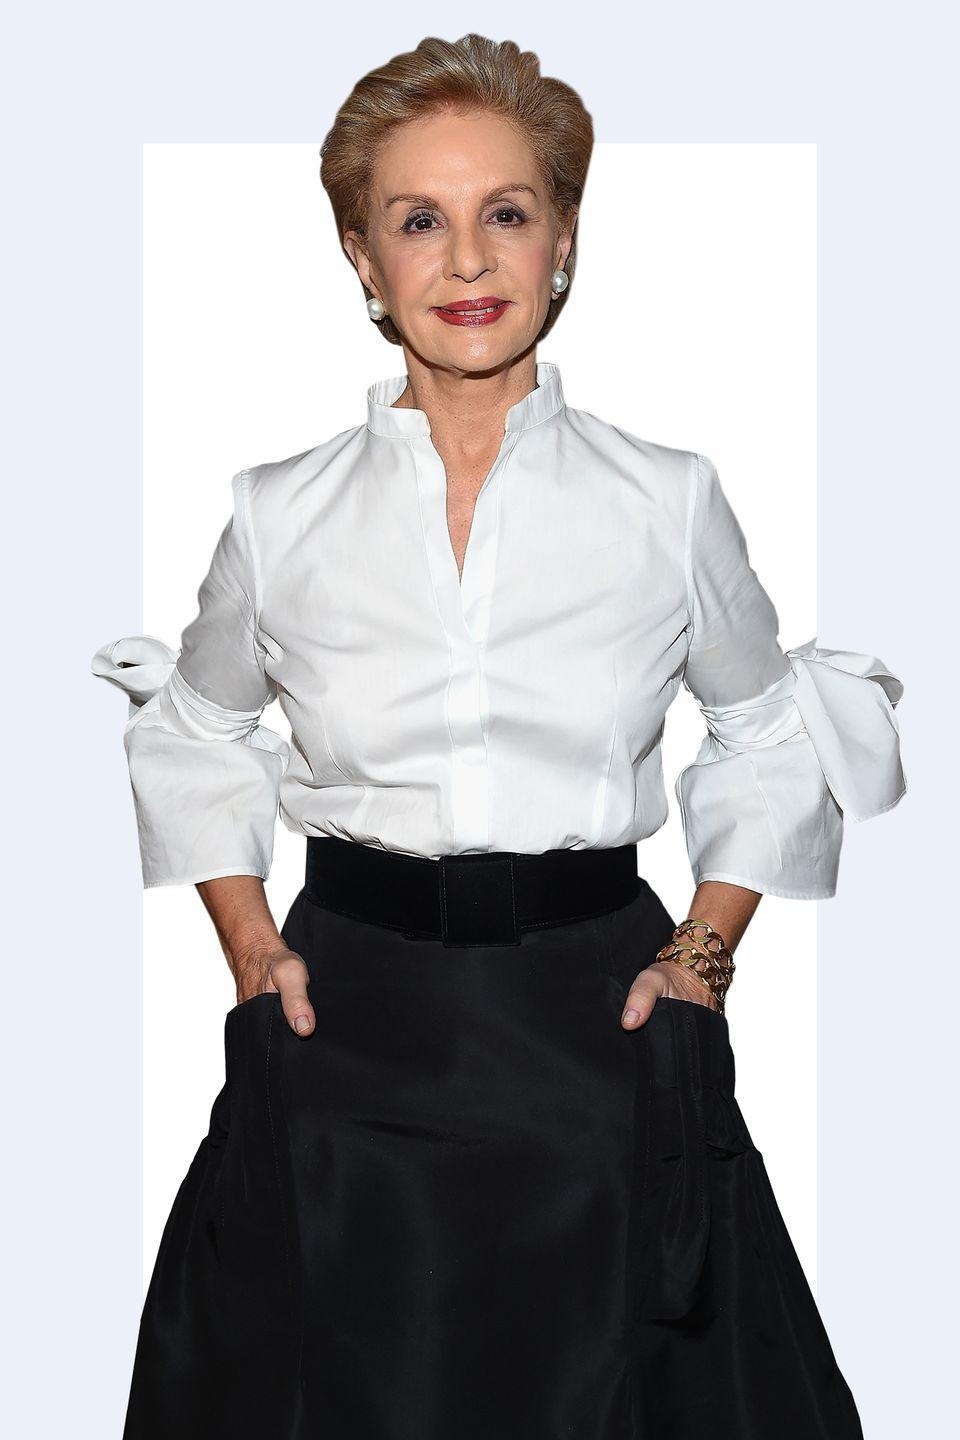 """<p>""""Carolina Herrera wears a <strong>white button down with a ball gown skirt</strong> and it's so chic. It's sort of unexpected to pair those two items together but it works really well."""" -<em><a rel=""""nofollow noopener"""" href=""""http://theonly.agency/negar-ali-kline"""" target=""""_blank"""" data-ylk=""""slk:Negar Ali Kline"""" class=""""link rapid-noclick-resp"""">Negar Ali Kline</a></em></p>"""